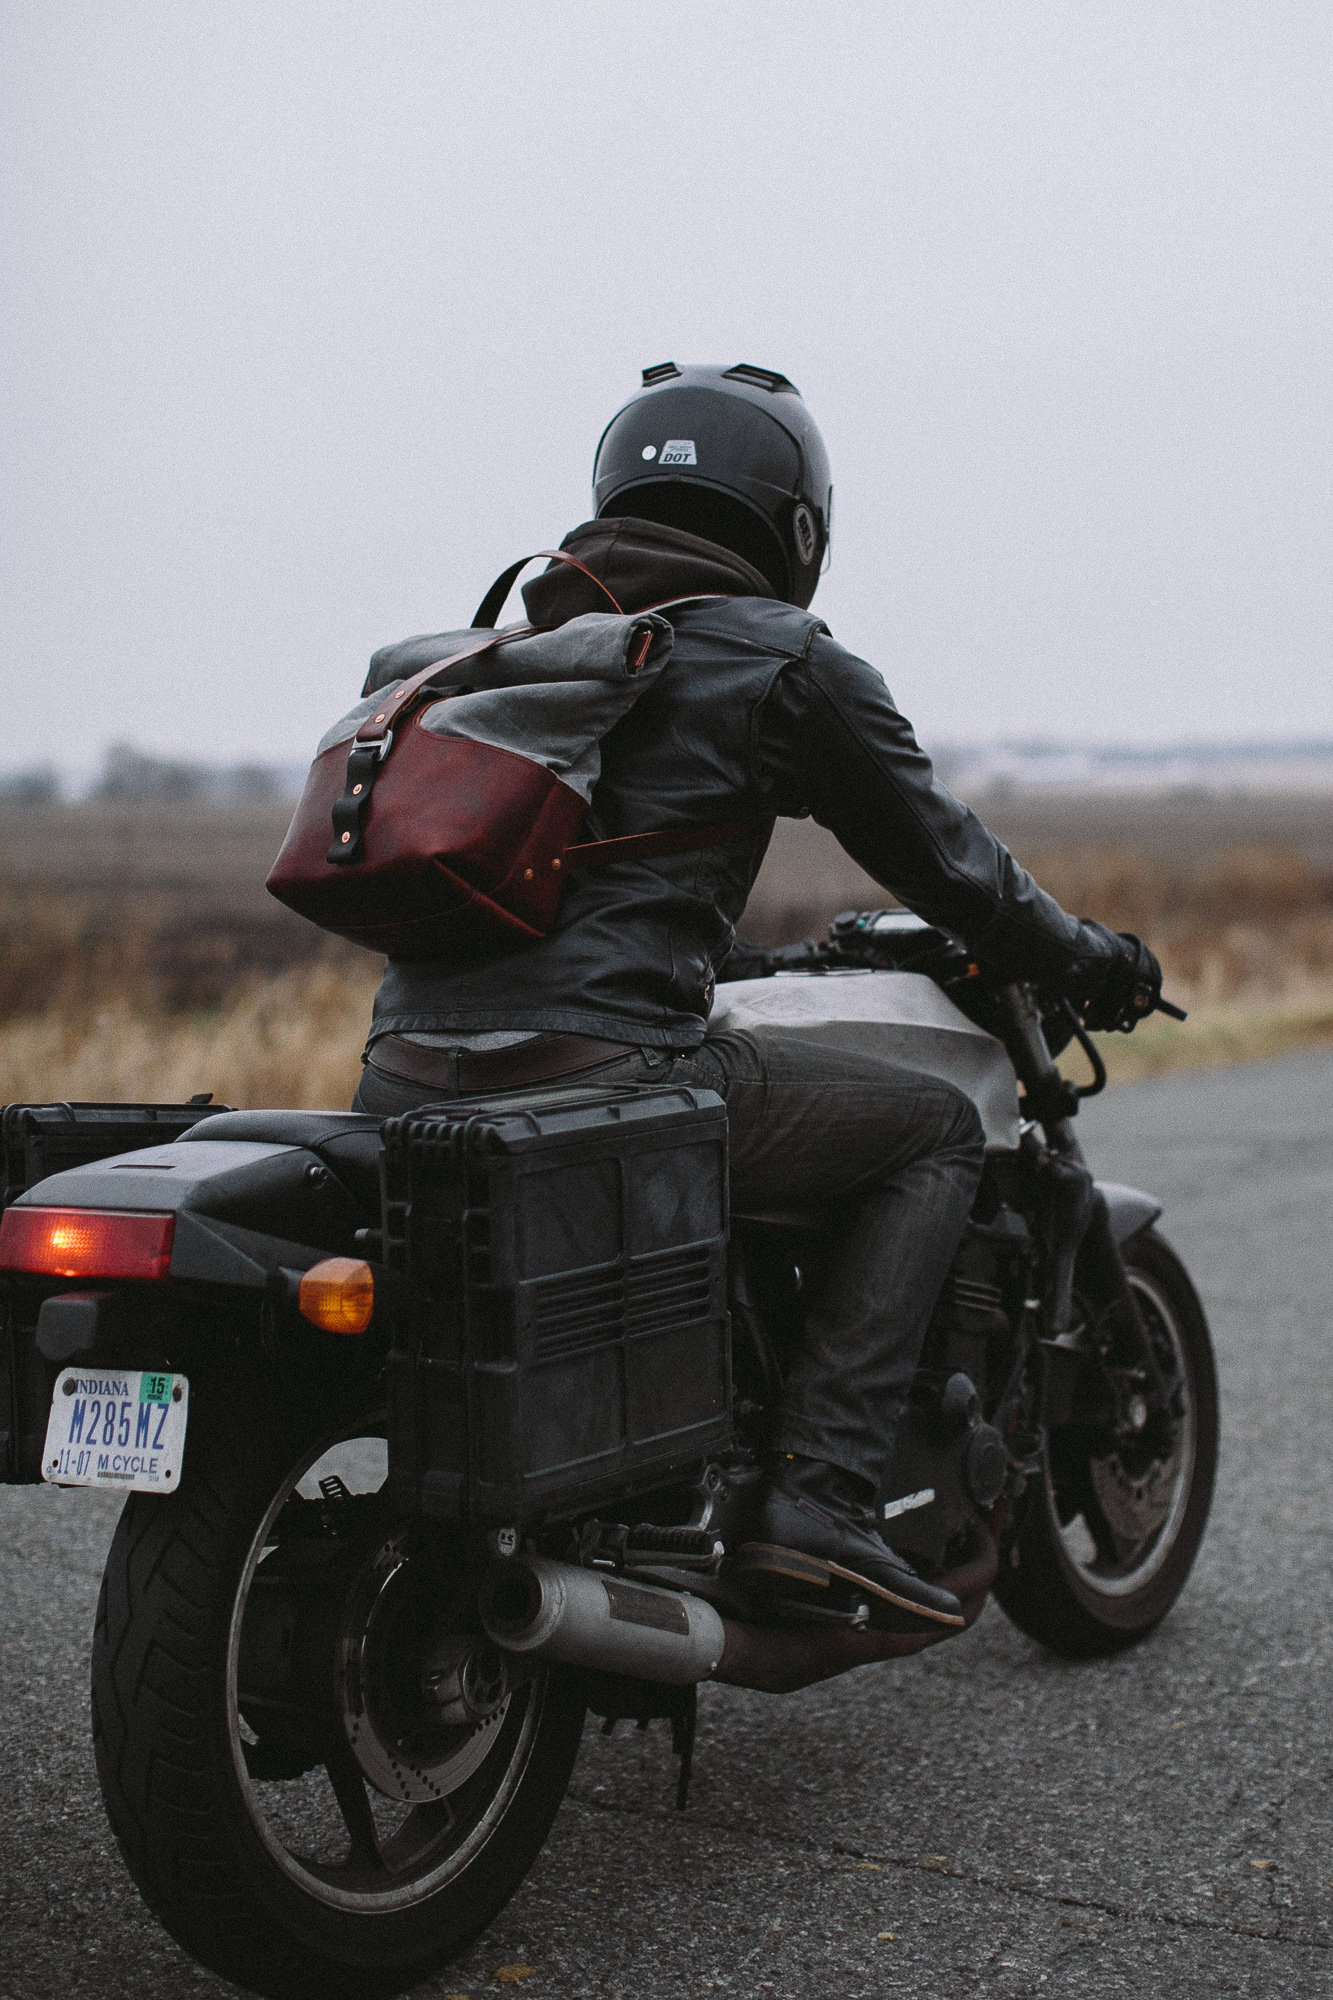 motorcycle backpack rucksack motorcycles retro armoured moto backpacks janus panniers silodrome gear anybody solid seen any imgur armored collection related